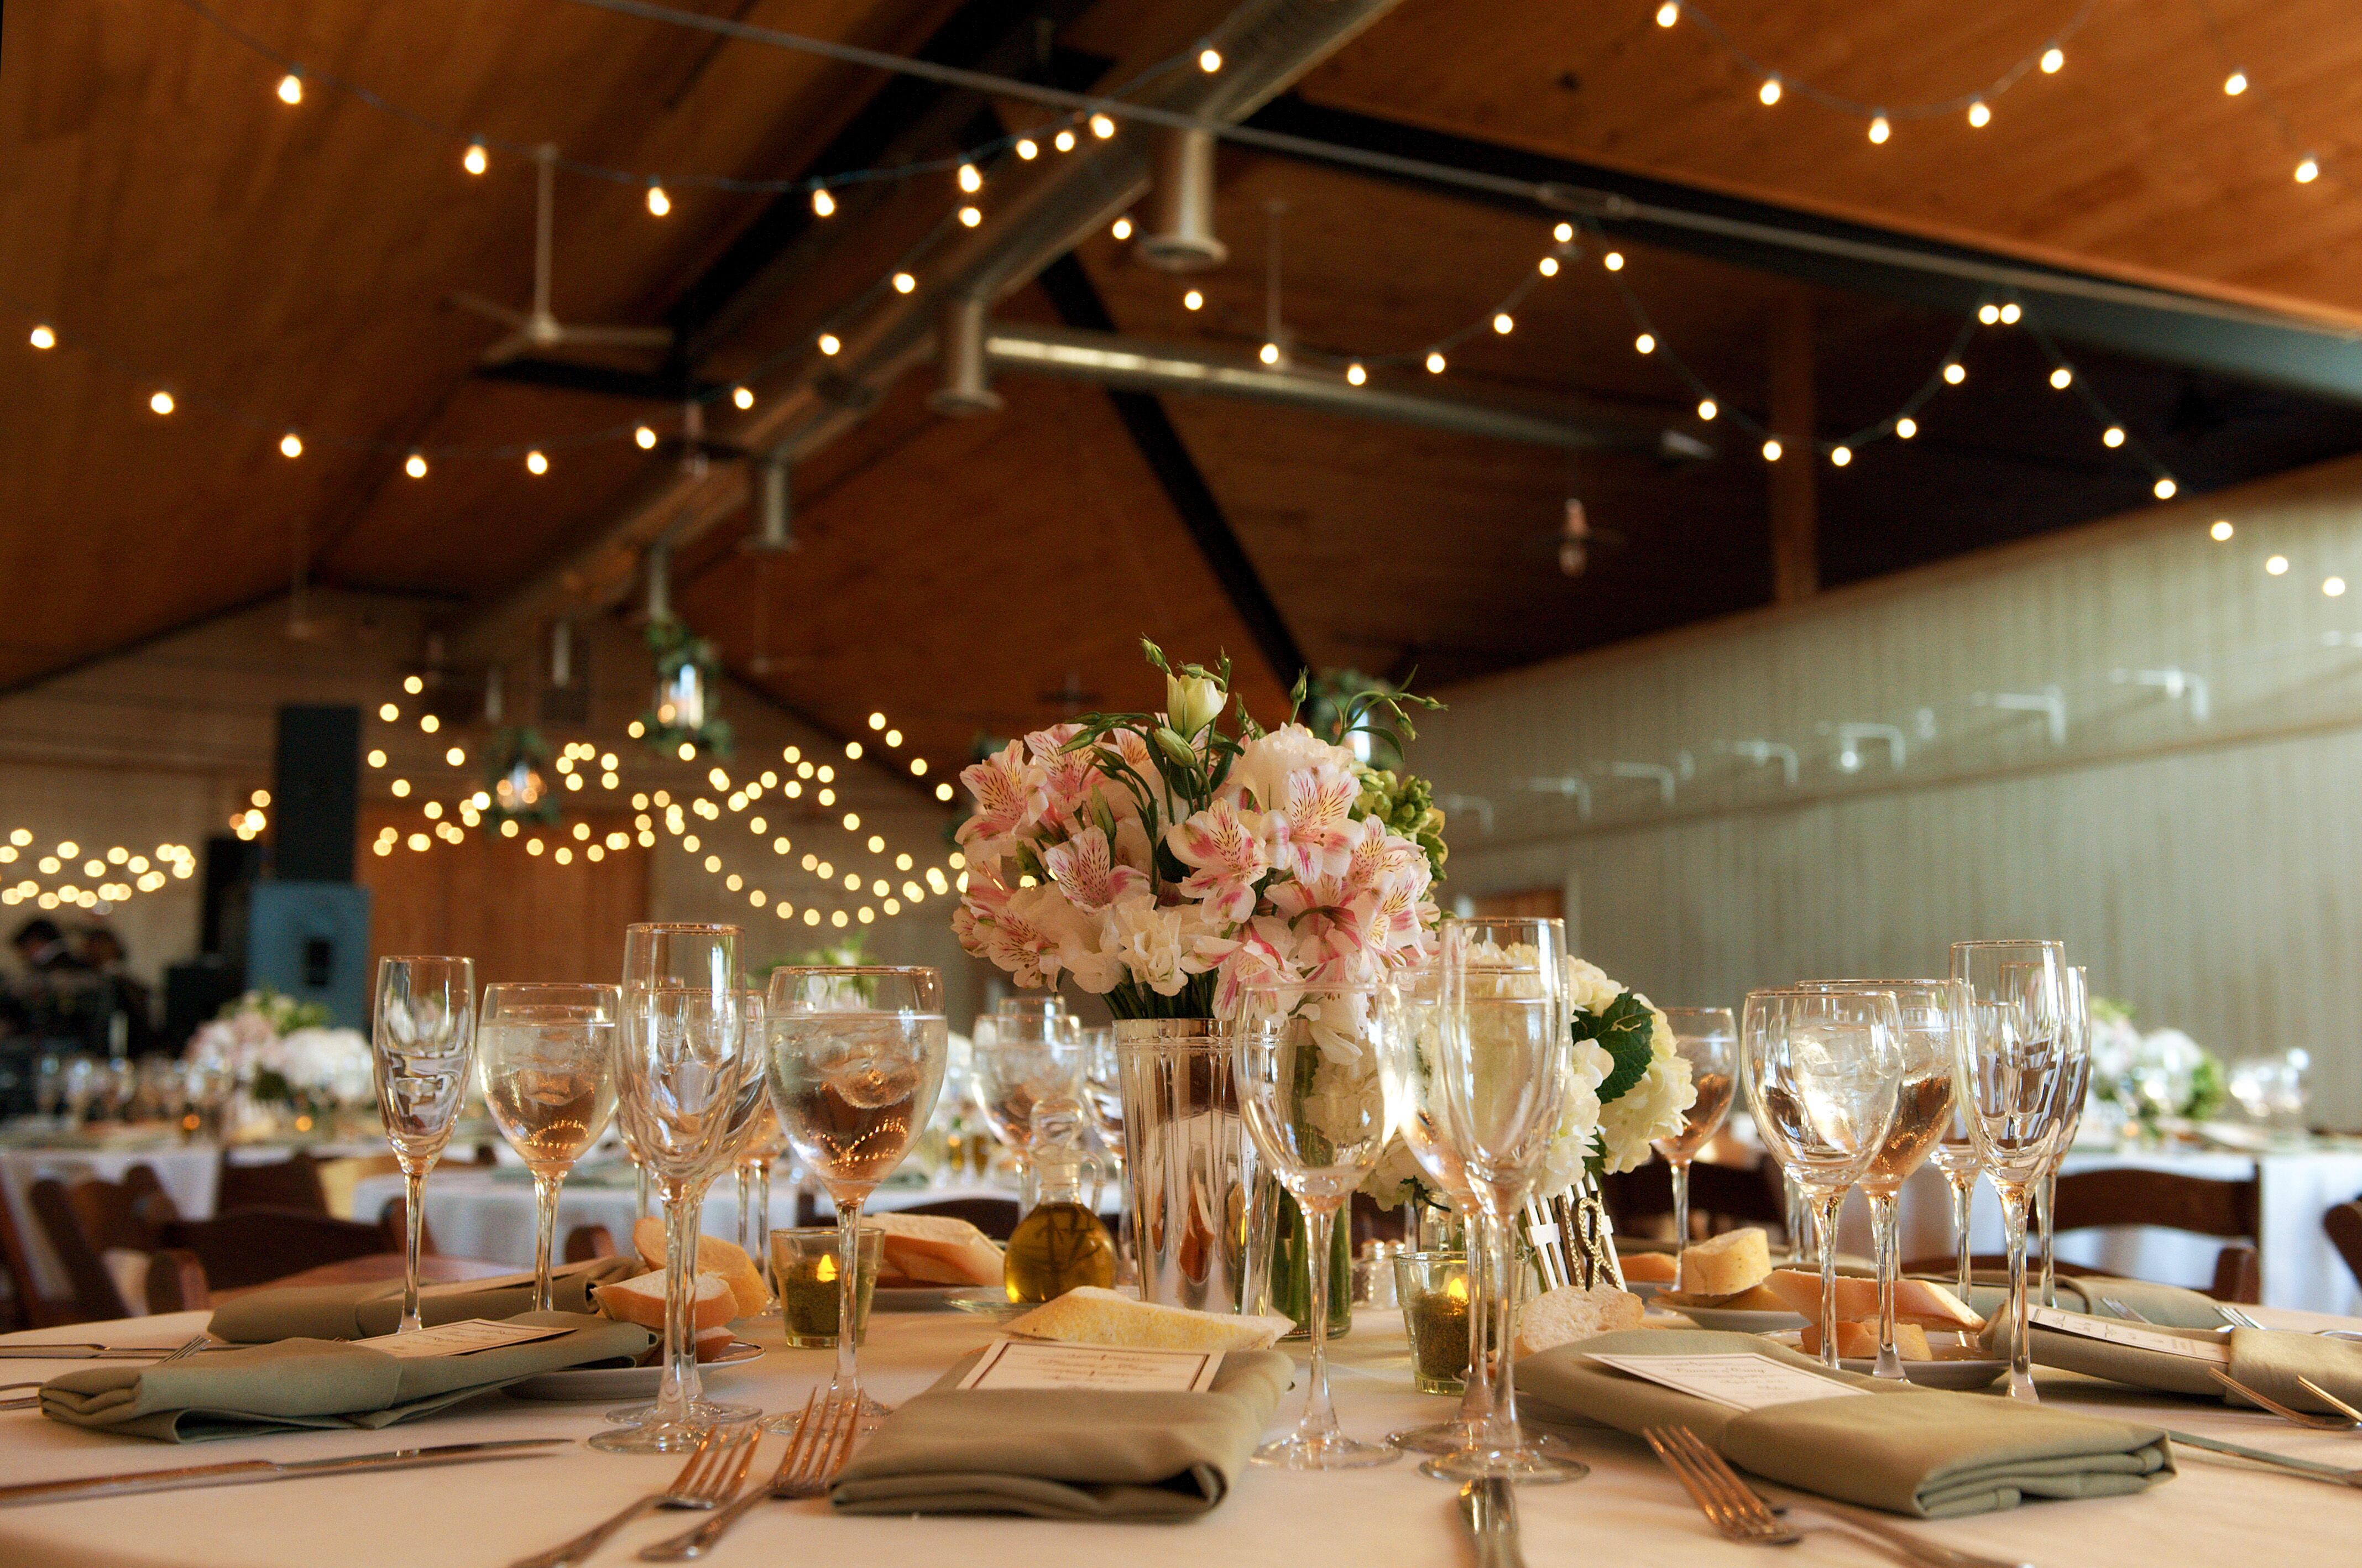 Wedding Venues in East Hampton, NY - The Knot